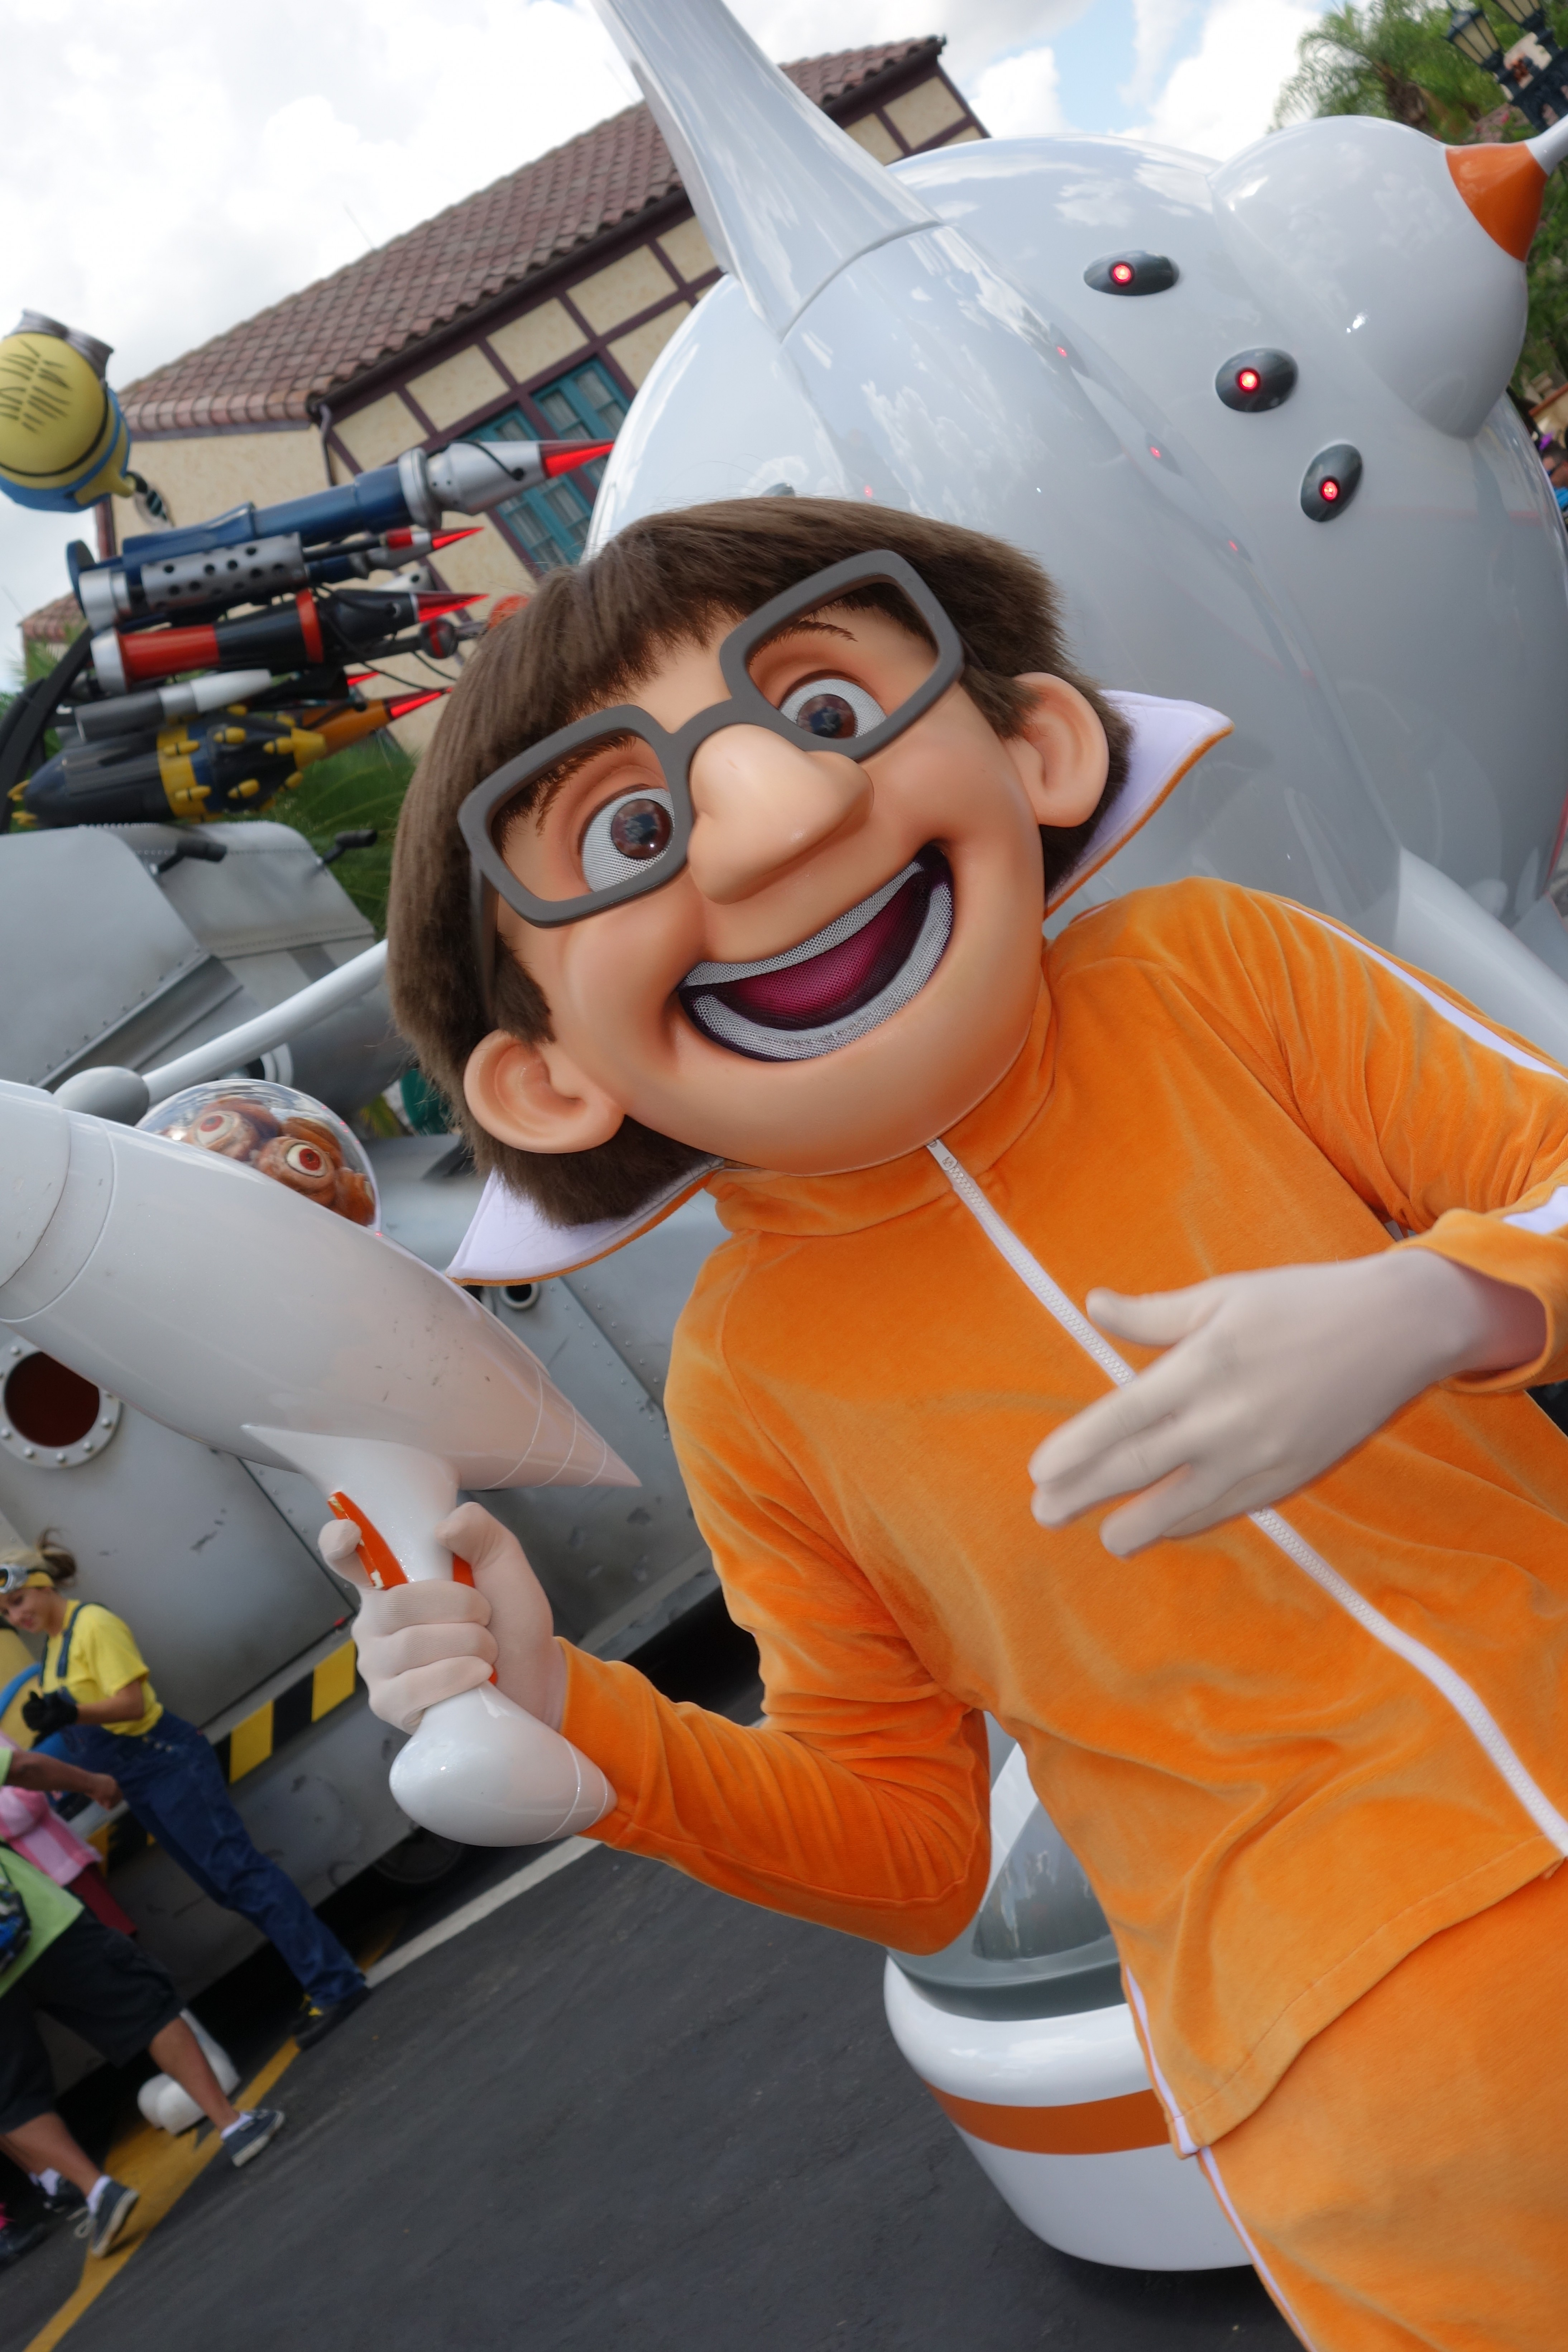 Real Name From Despicable Me Vectors: Vector From Despicable Me Universal Studios Character Meet